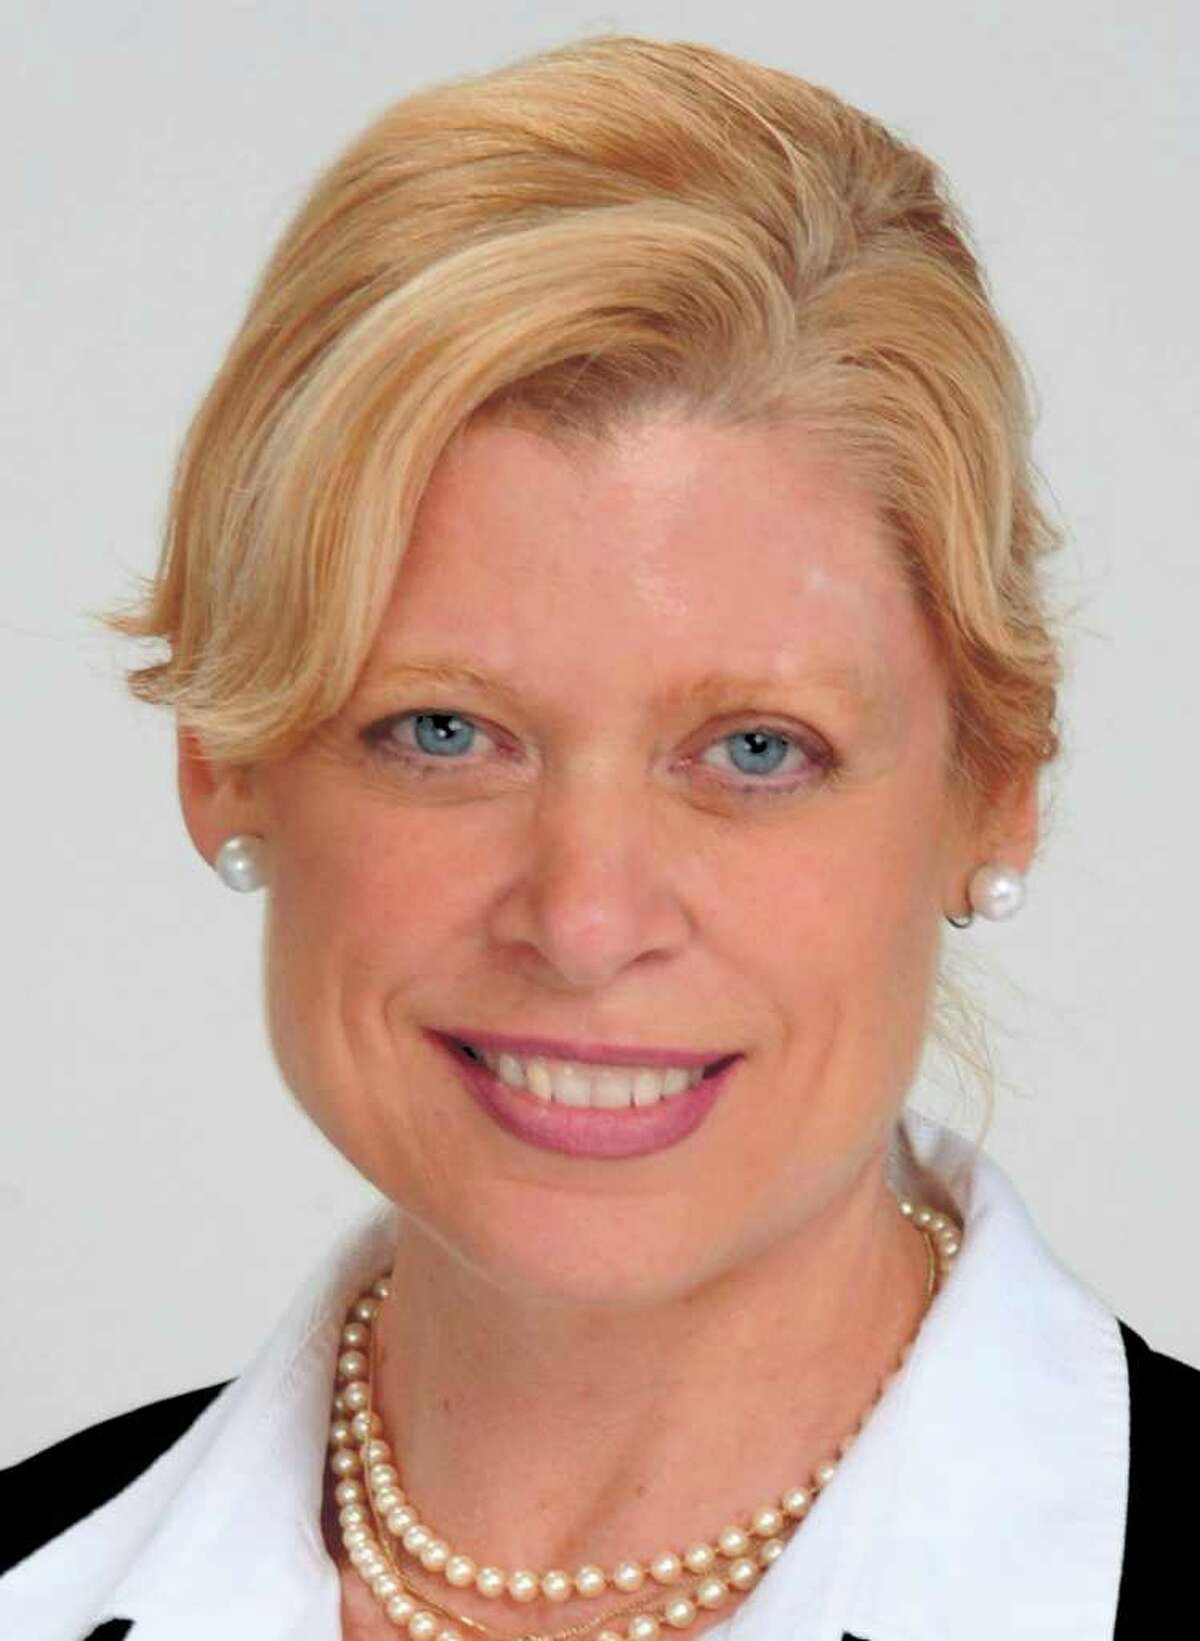 This undated photo released by the Martha Dean campaign for Connecticut attorney general, shows Martha Dean, Republican, running in the Nov. 2, 2010 election. Dean is scheduled to debate Democrat opponent George Jepsen Thursday night, Sept. 23, 2010 in Hartford, Conn.(AP Photo/Martha Dean campaign) **NO SALES**